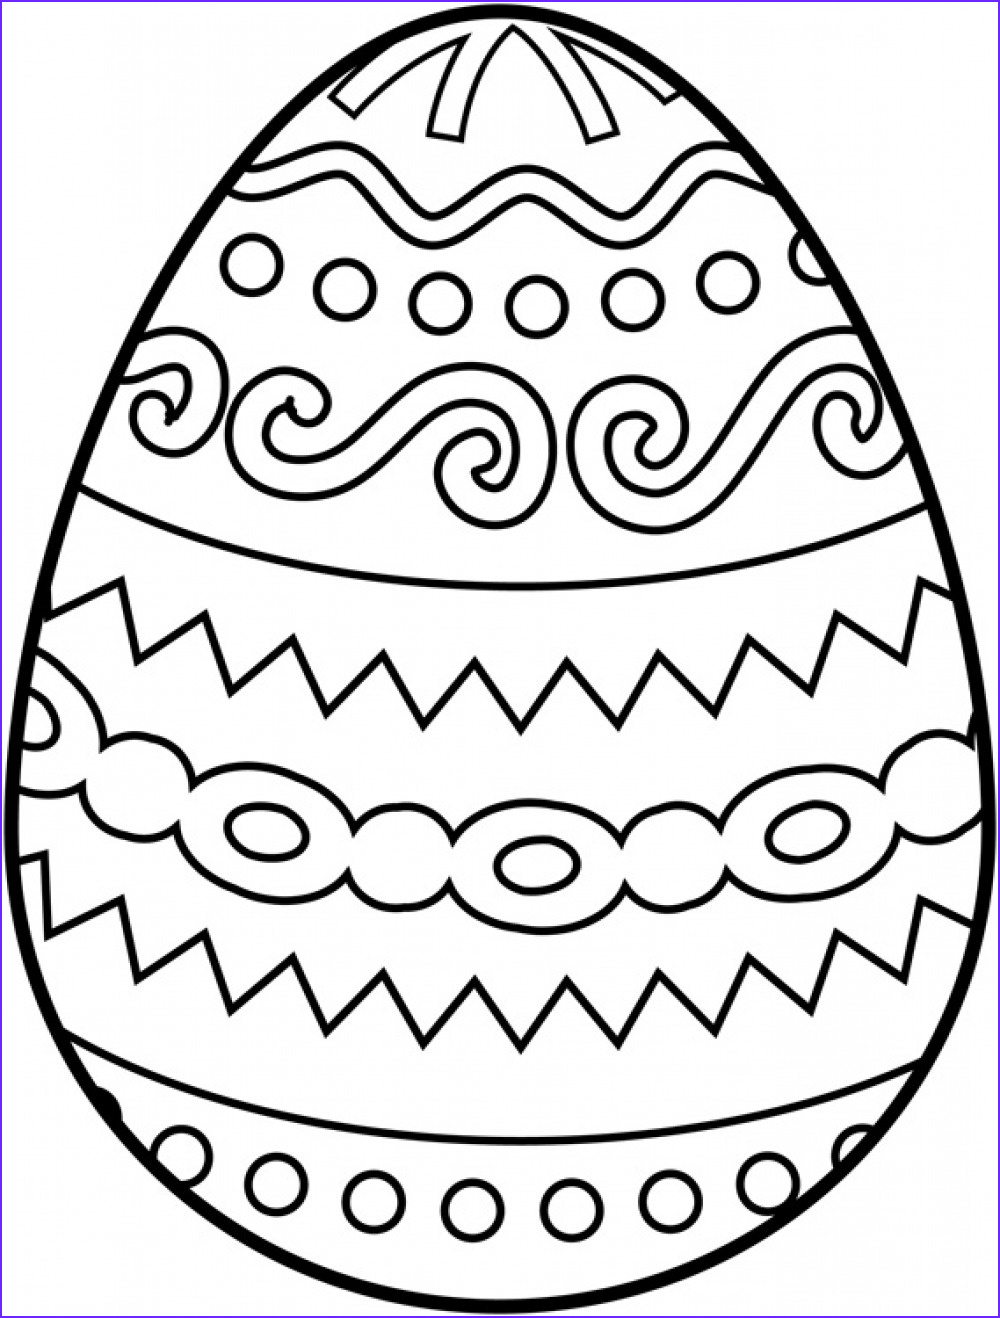 Coloring Pages for Easter Inspirational Photography Easter Coloring Pages Best Coloring Pages for Kids